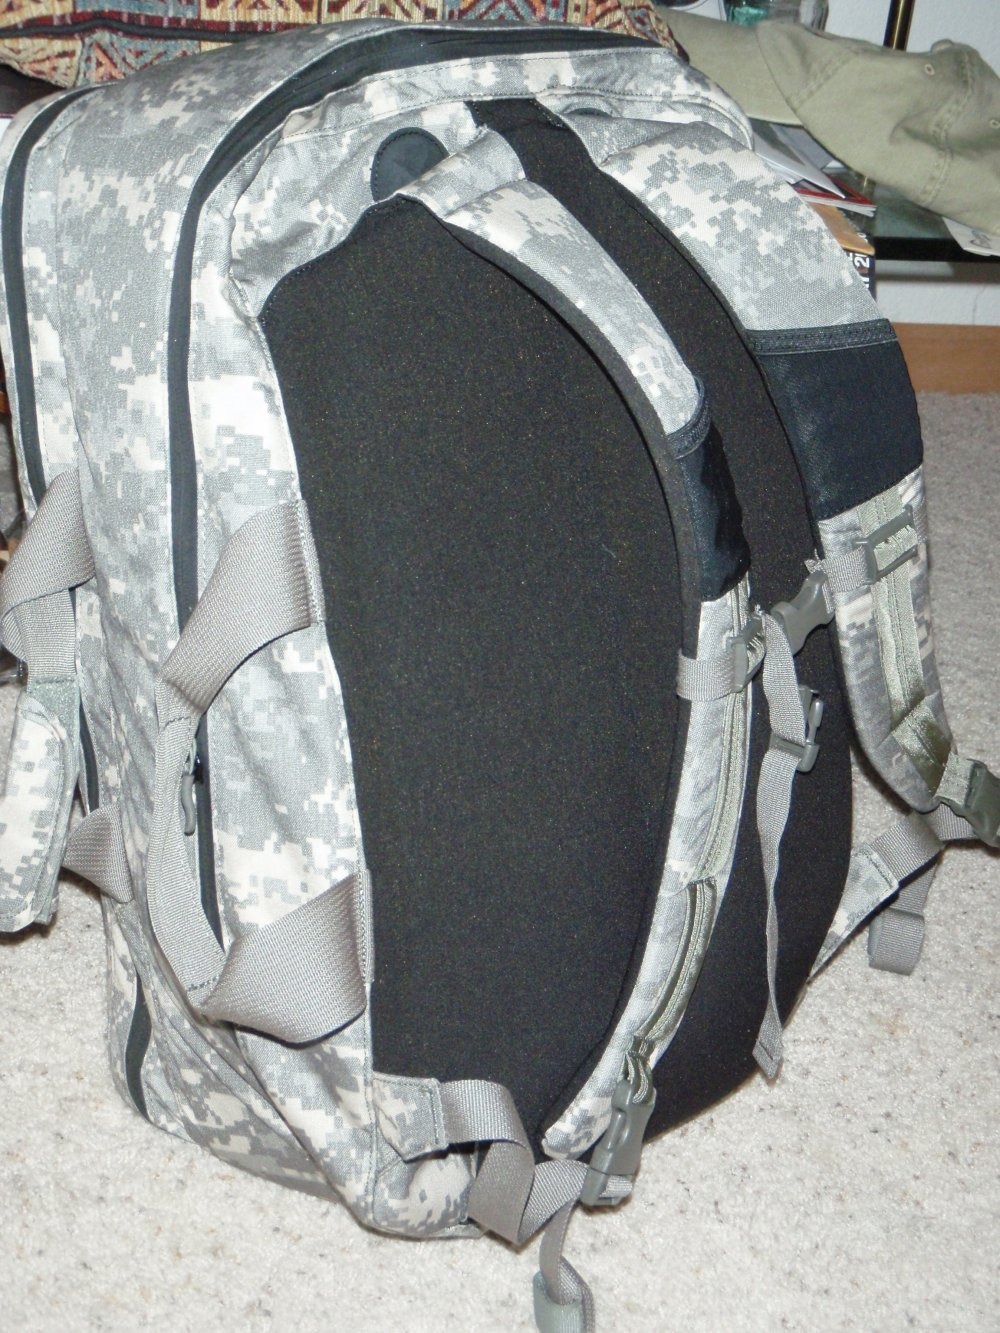 granite gear rat patrol travel commute bag backpack acu camo pattern 14 <!  :en  >Rat Patrol Travel Bag by Granite Gear Tactical: Briefcase, Backpack, Laptop Case, and Daypack, All Rolled into One. <!  :  >